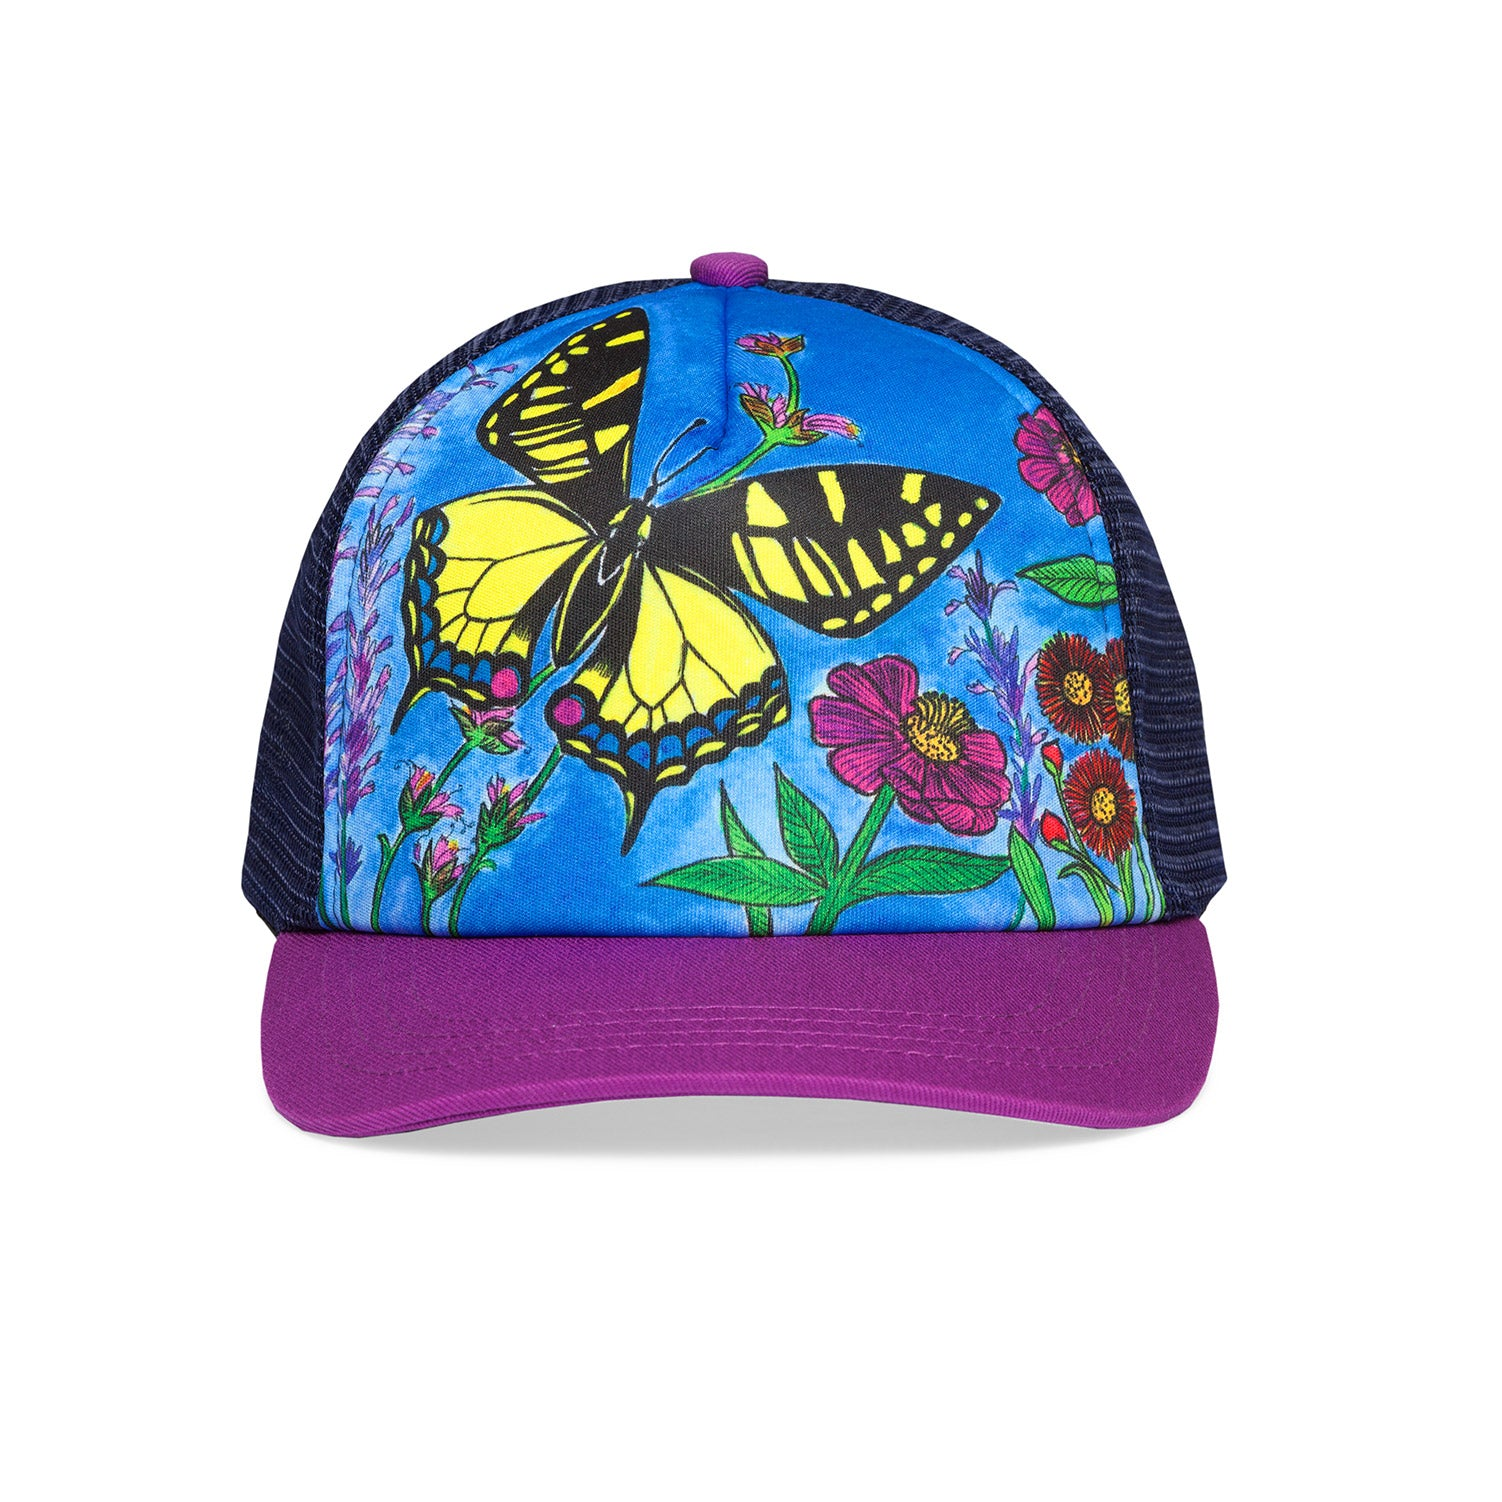 a photo of the sunday afternoons kids butterly trucker hat, front view